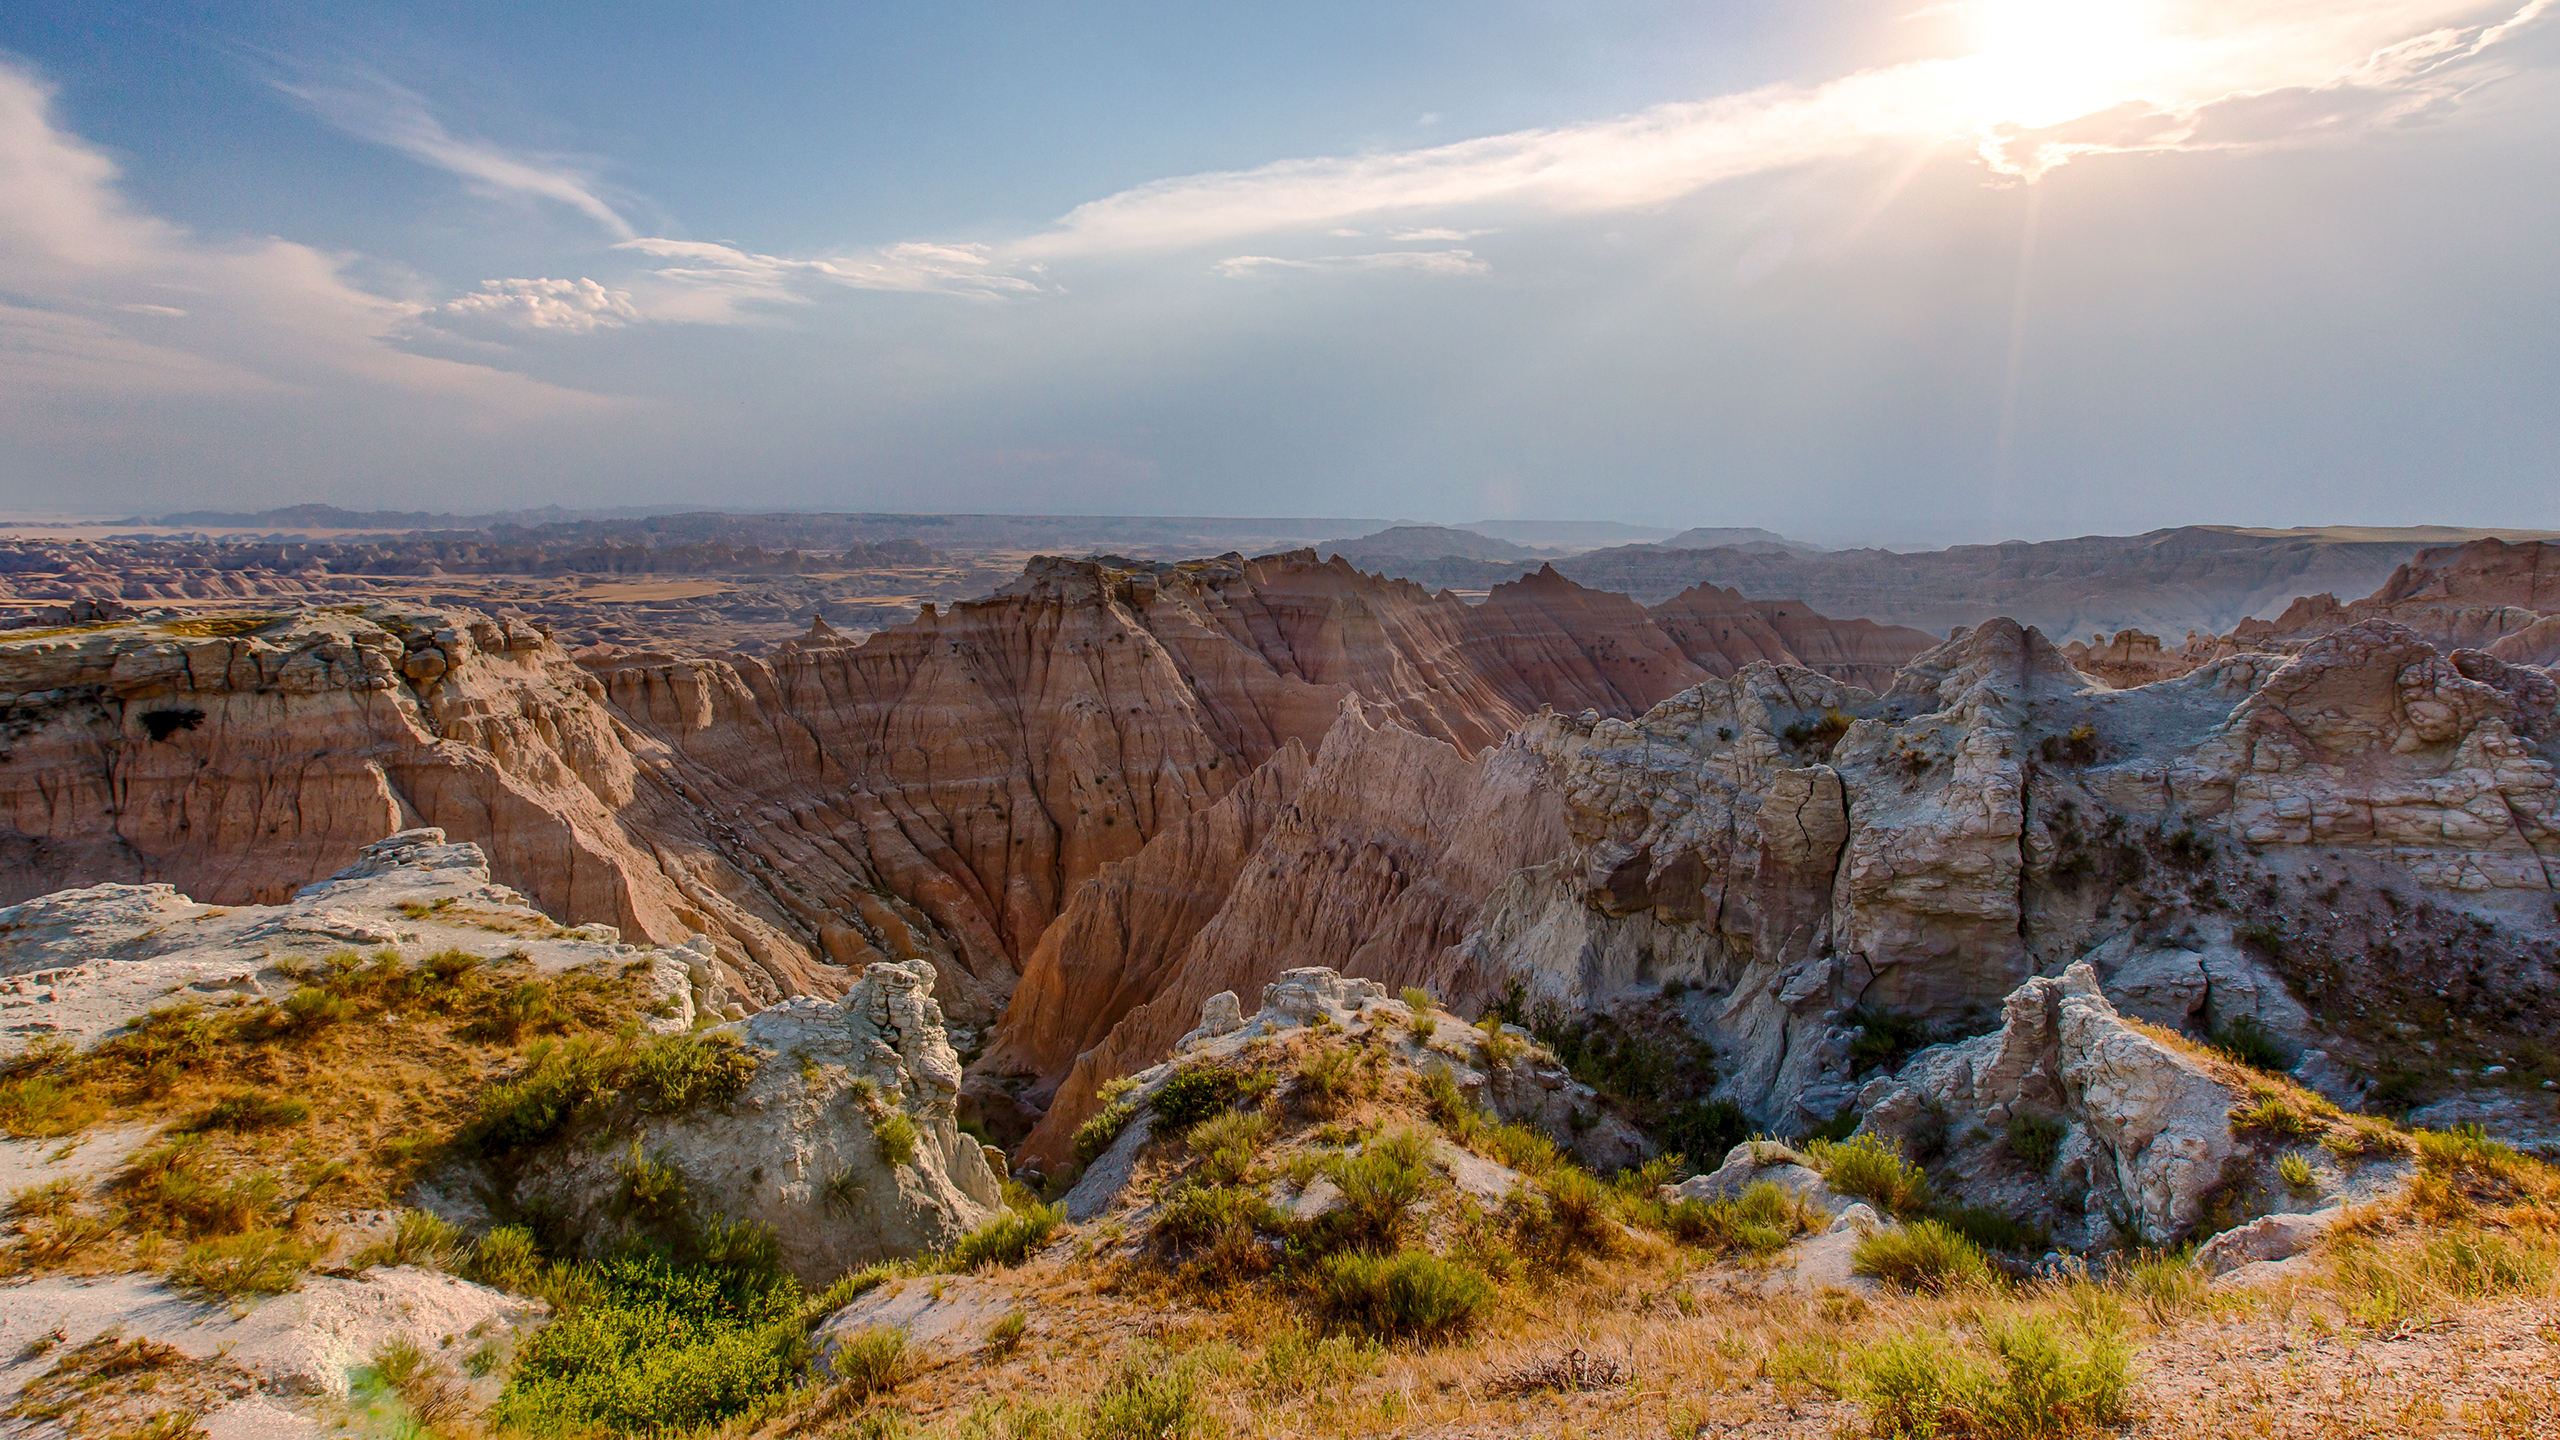 south_dakota_badlands_wallpaper_2560x1440